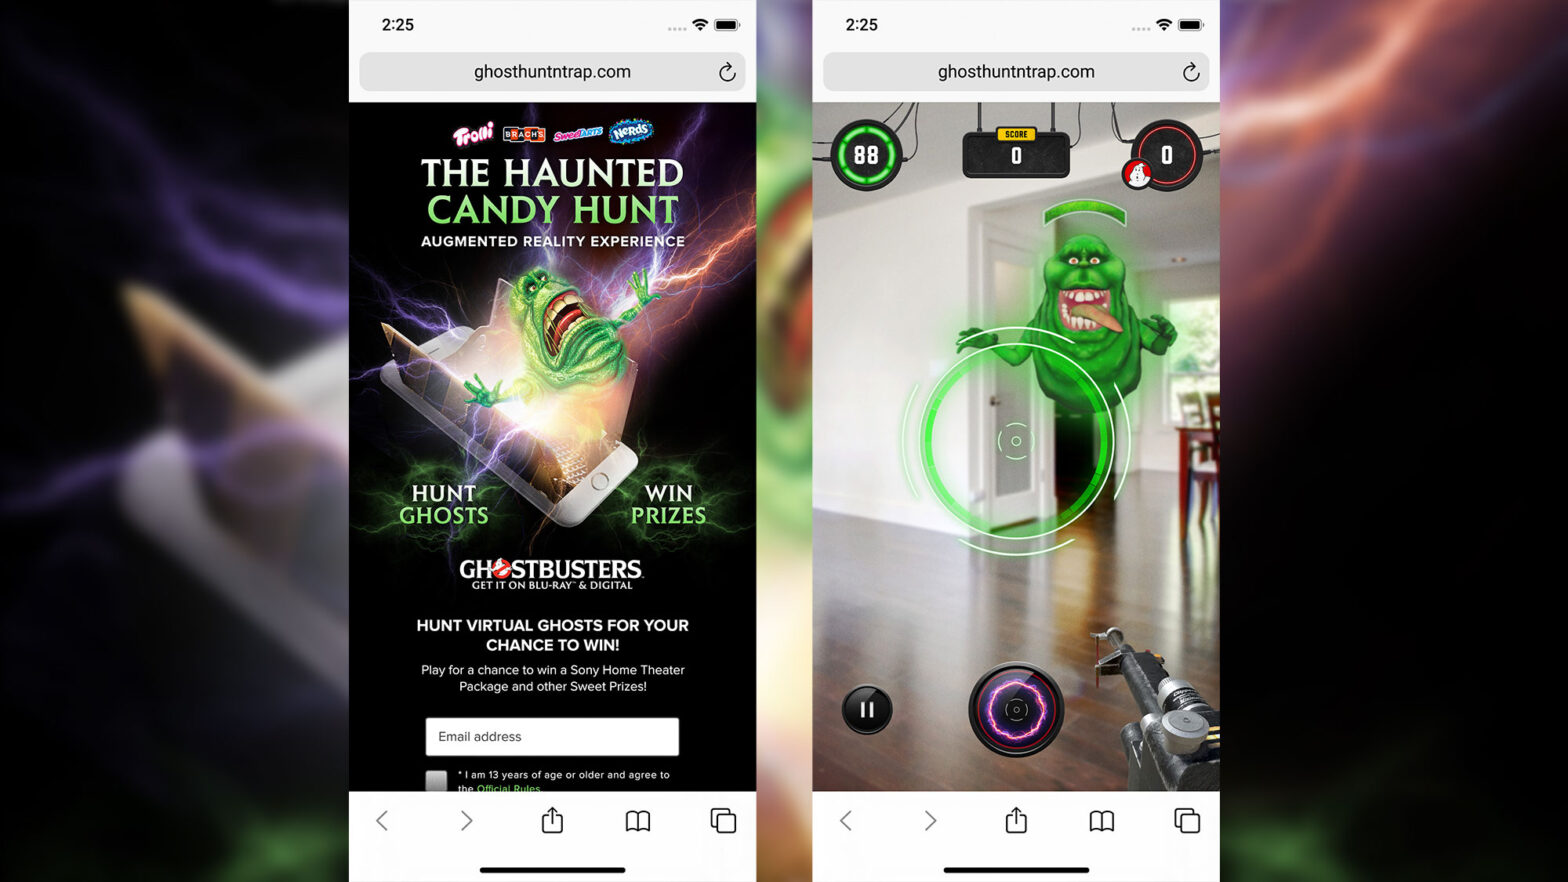 The Haunted Candy Hunt AR Experience